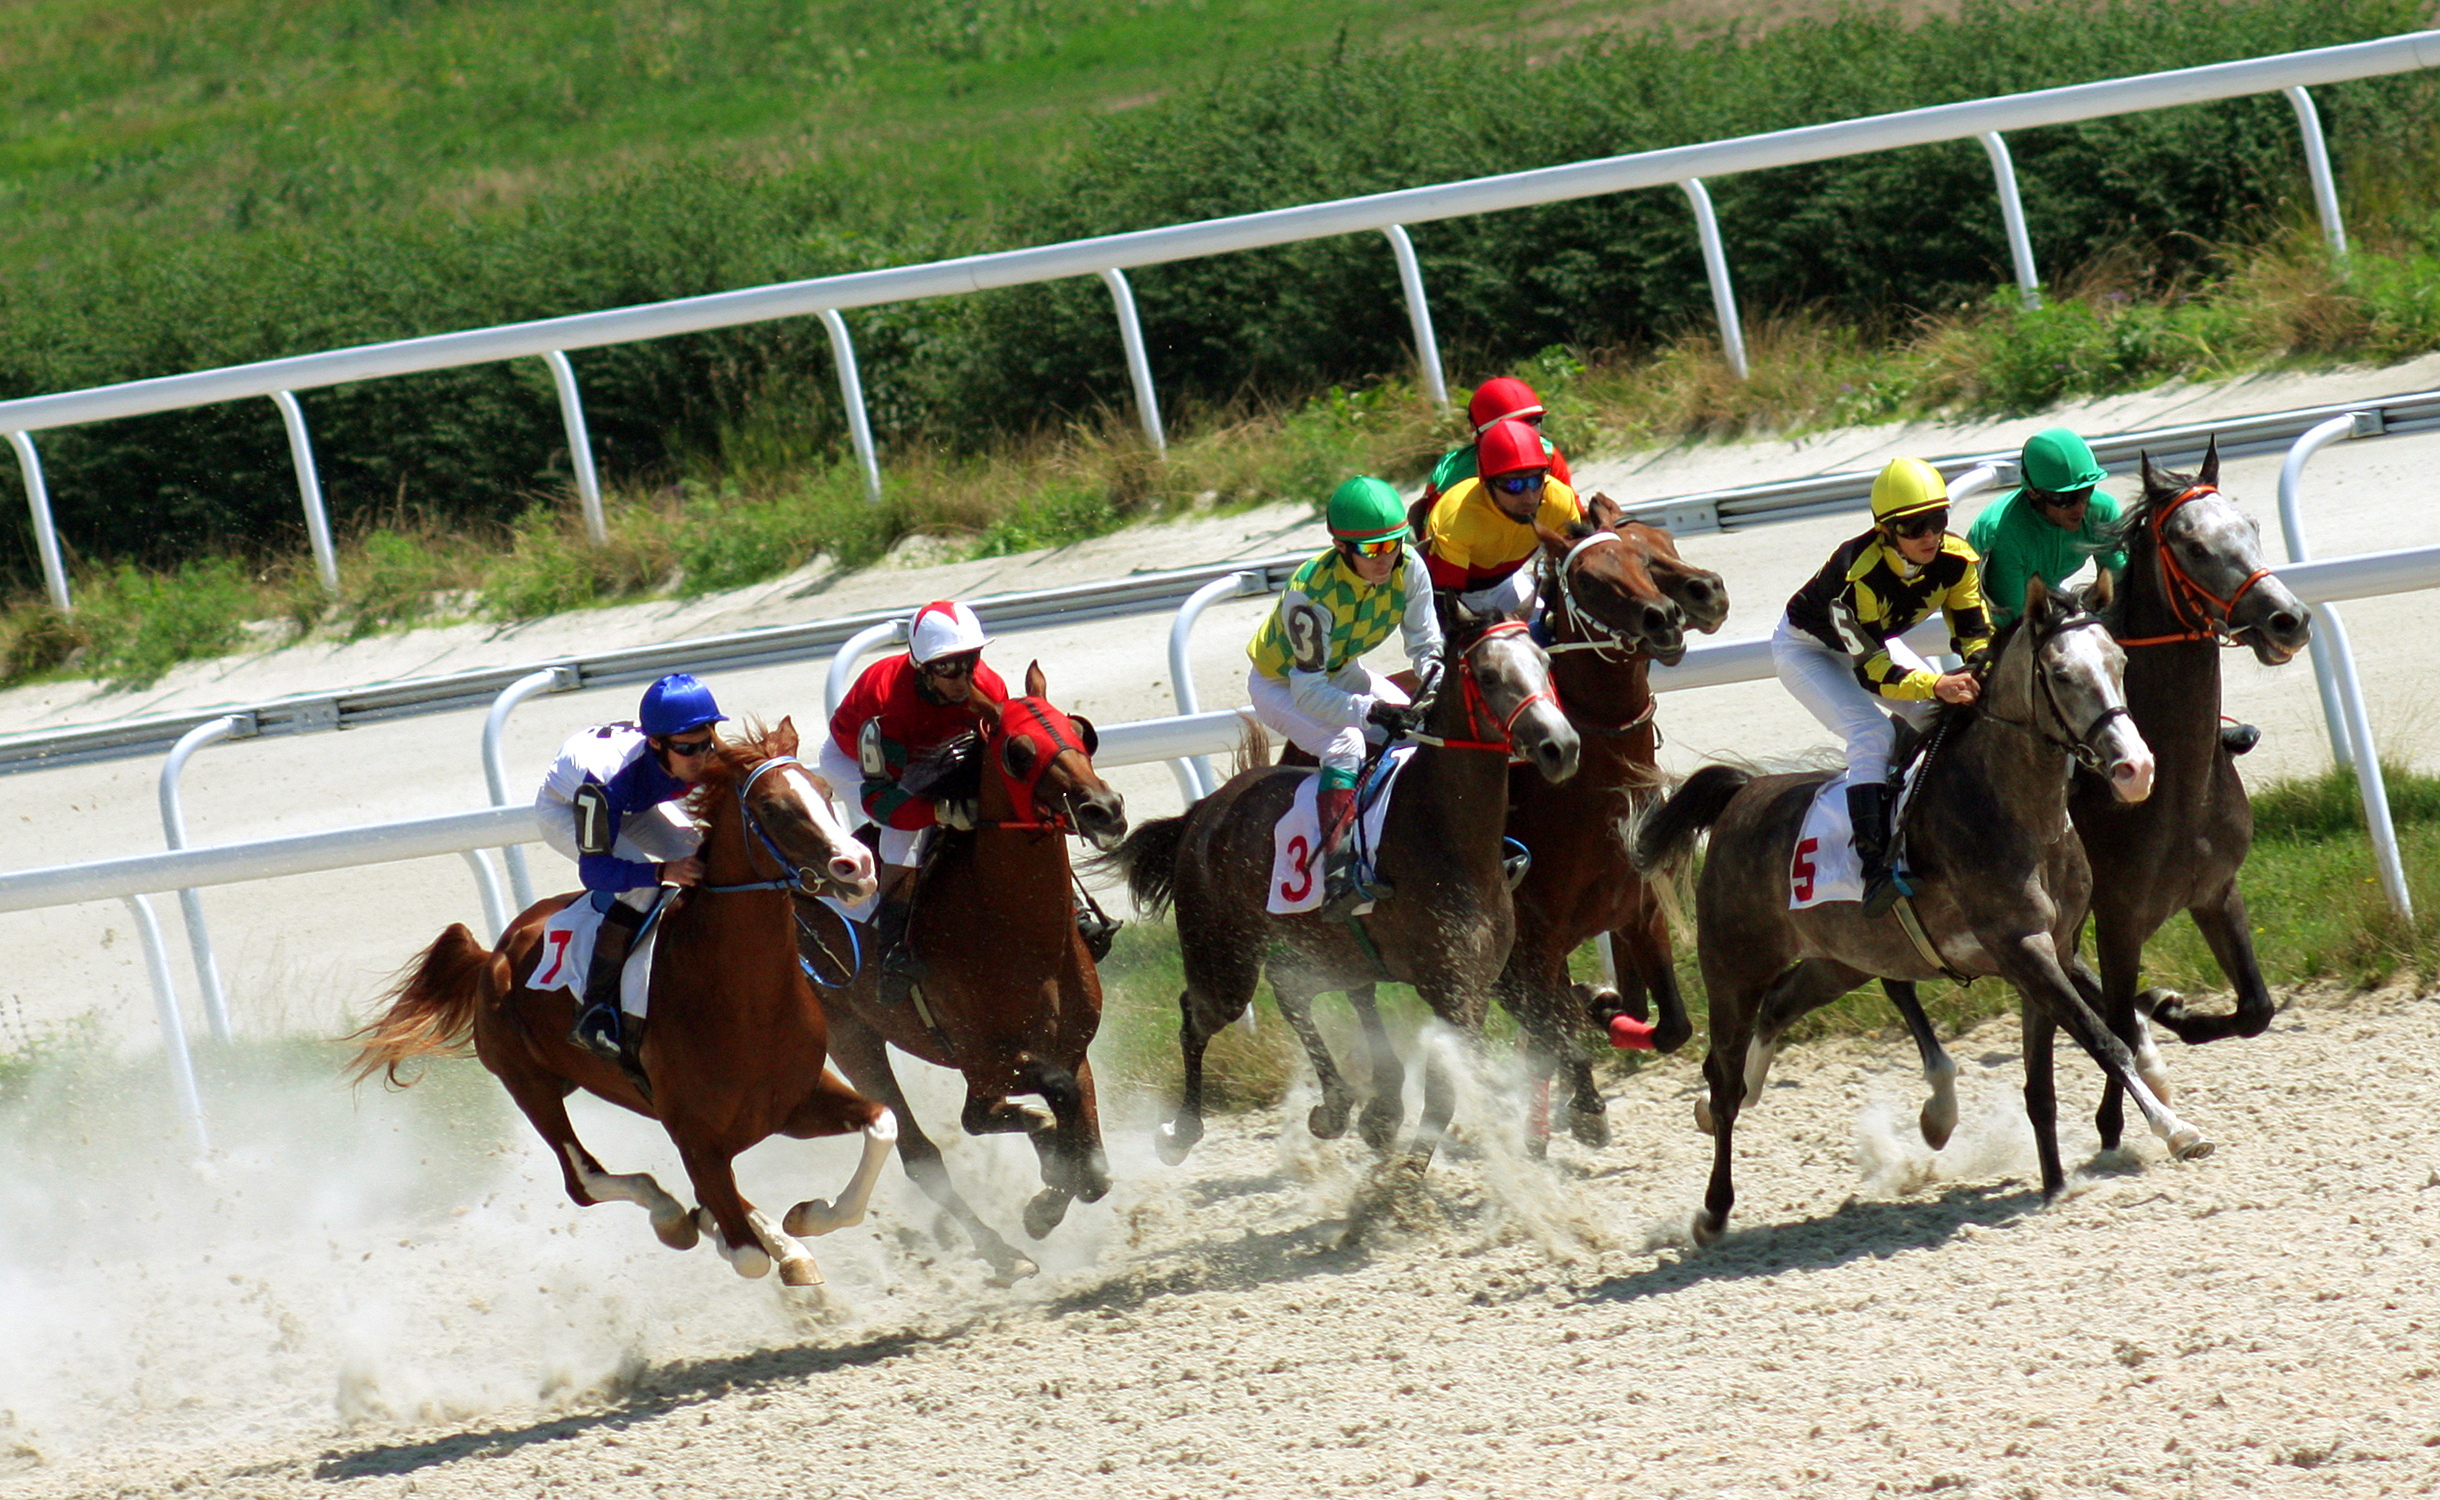 Horse racing for the prize Caucasus, Russia.